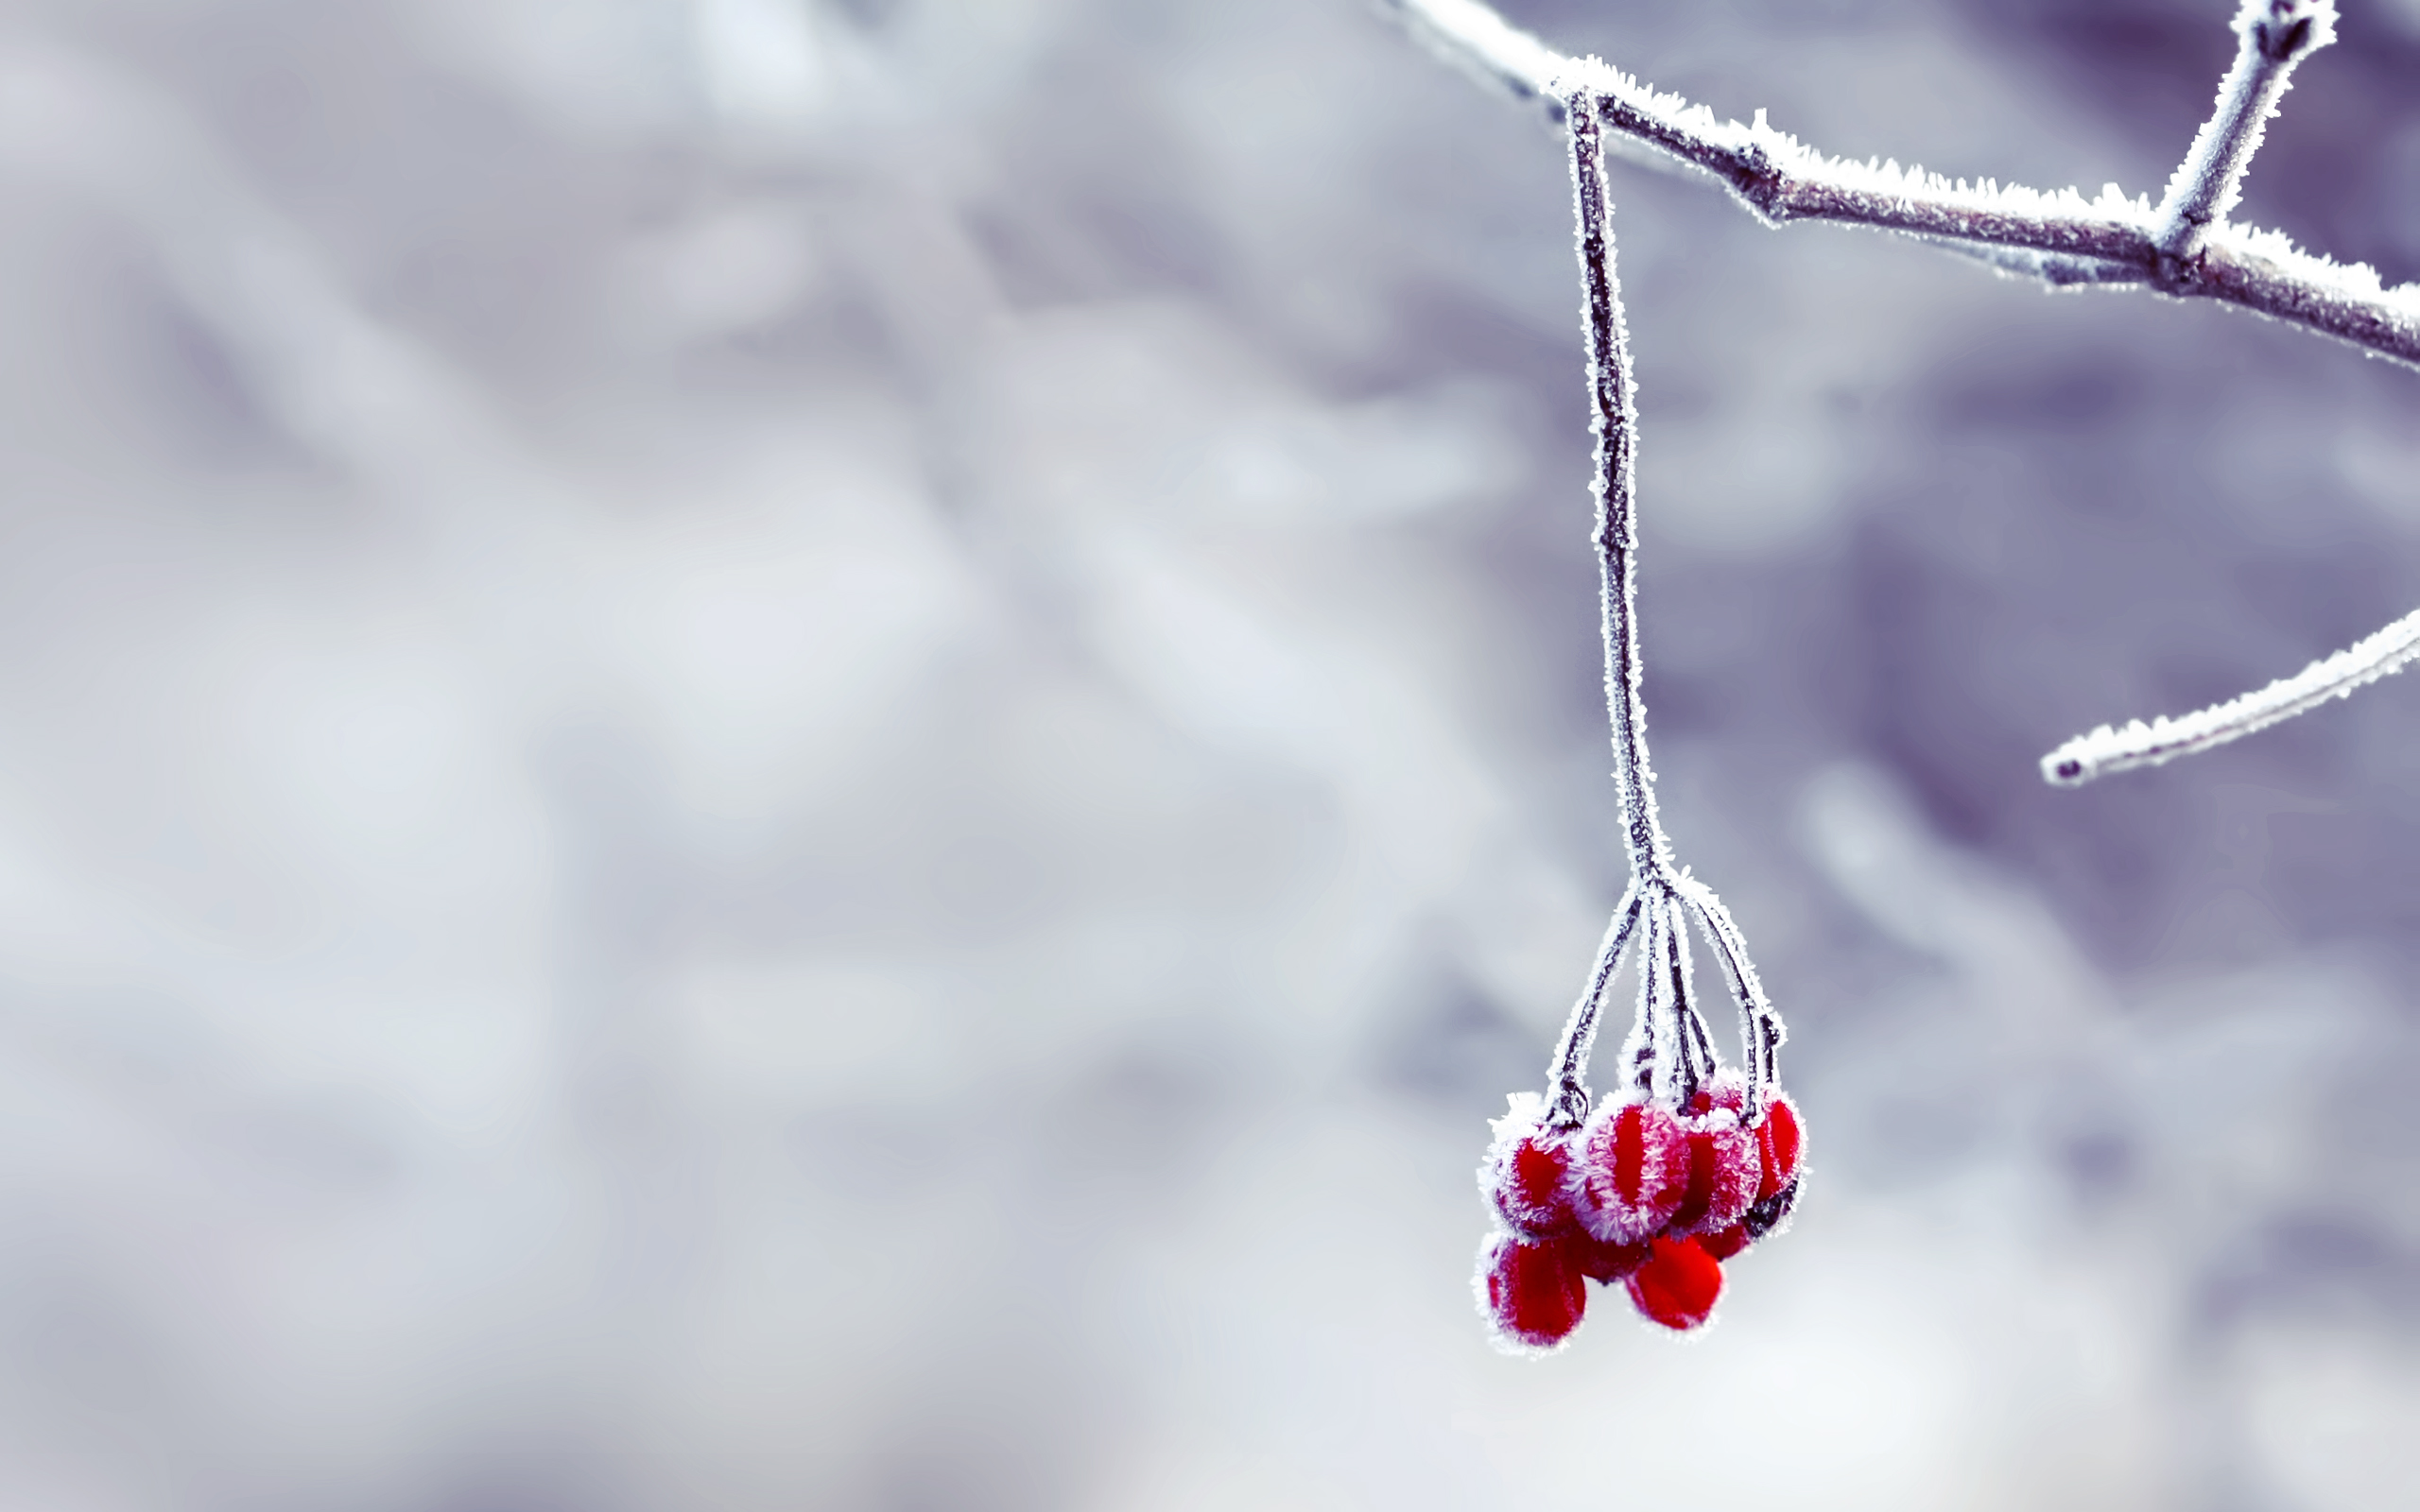 Snow Love Wallpaper For Pc : snow wallpaper berries - HD Desktop Wallpapers 4k HD